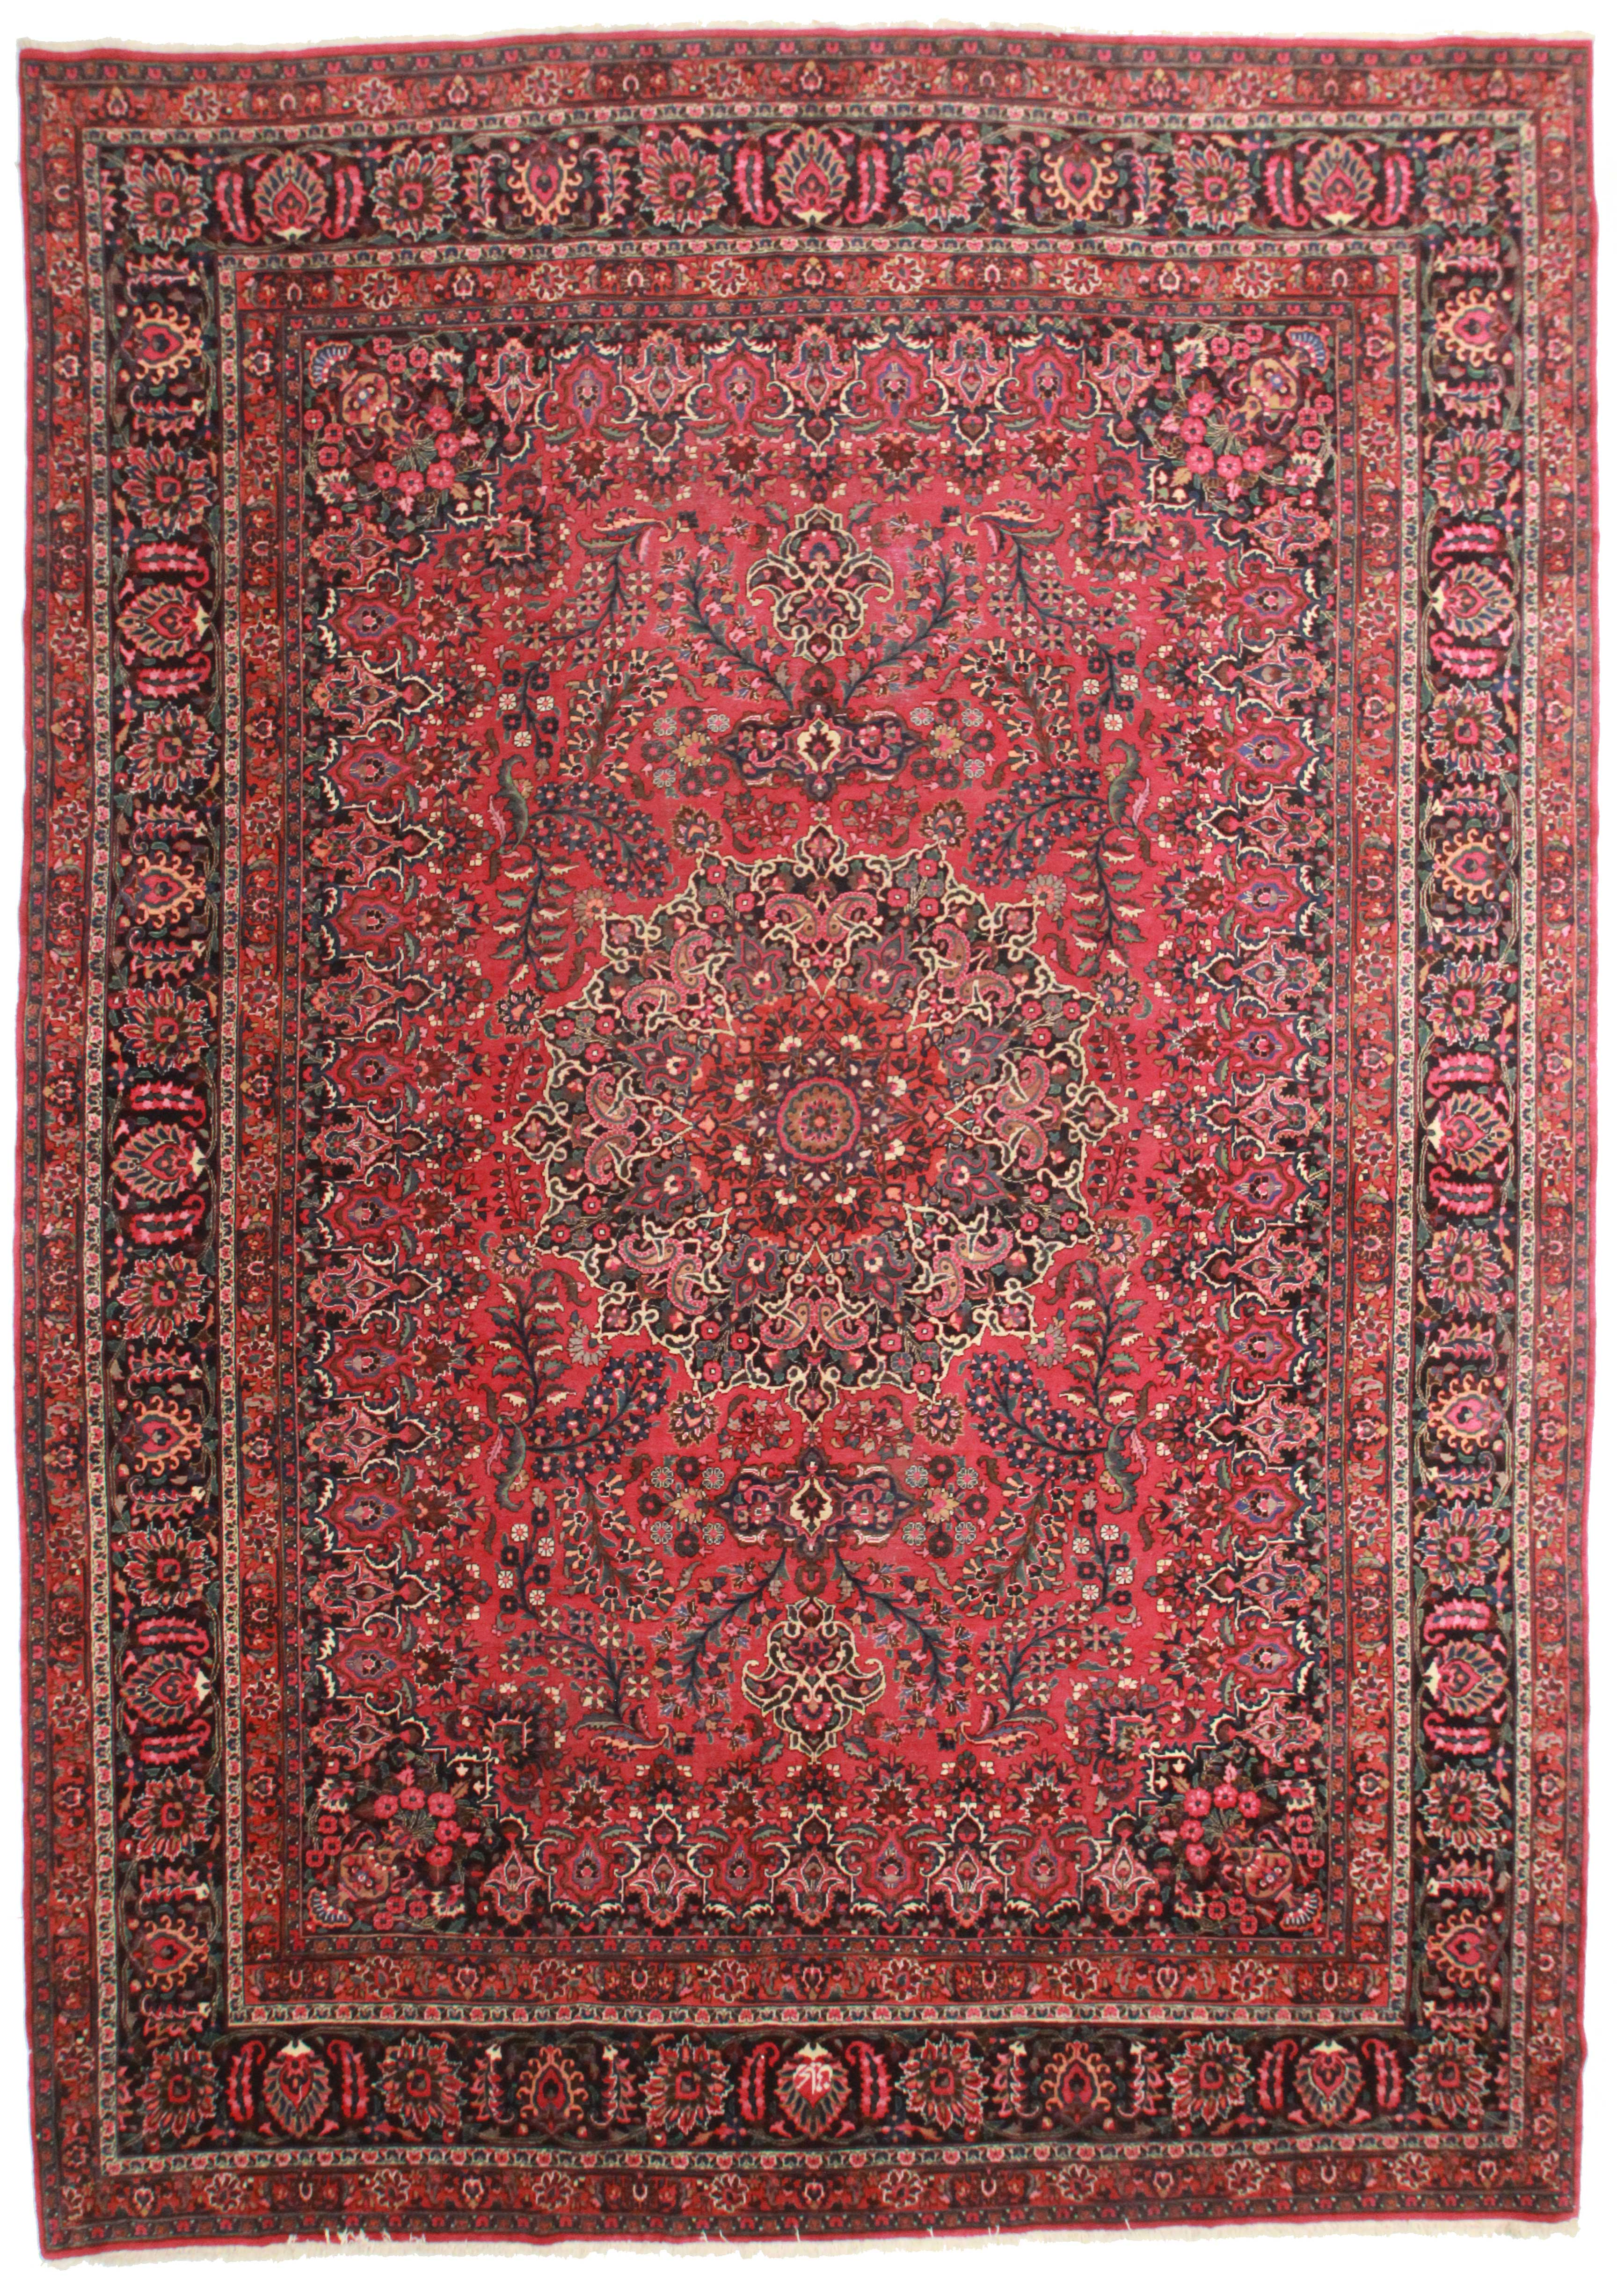 112″ x 159″ antique wool persian mashhad rug 10592